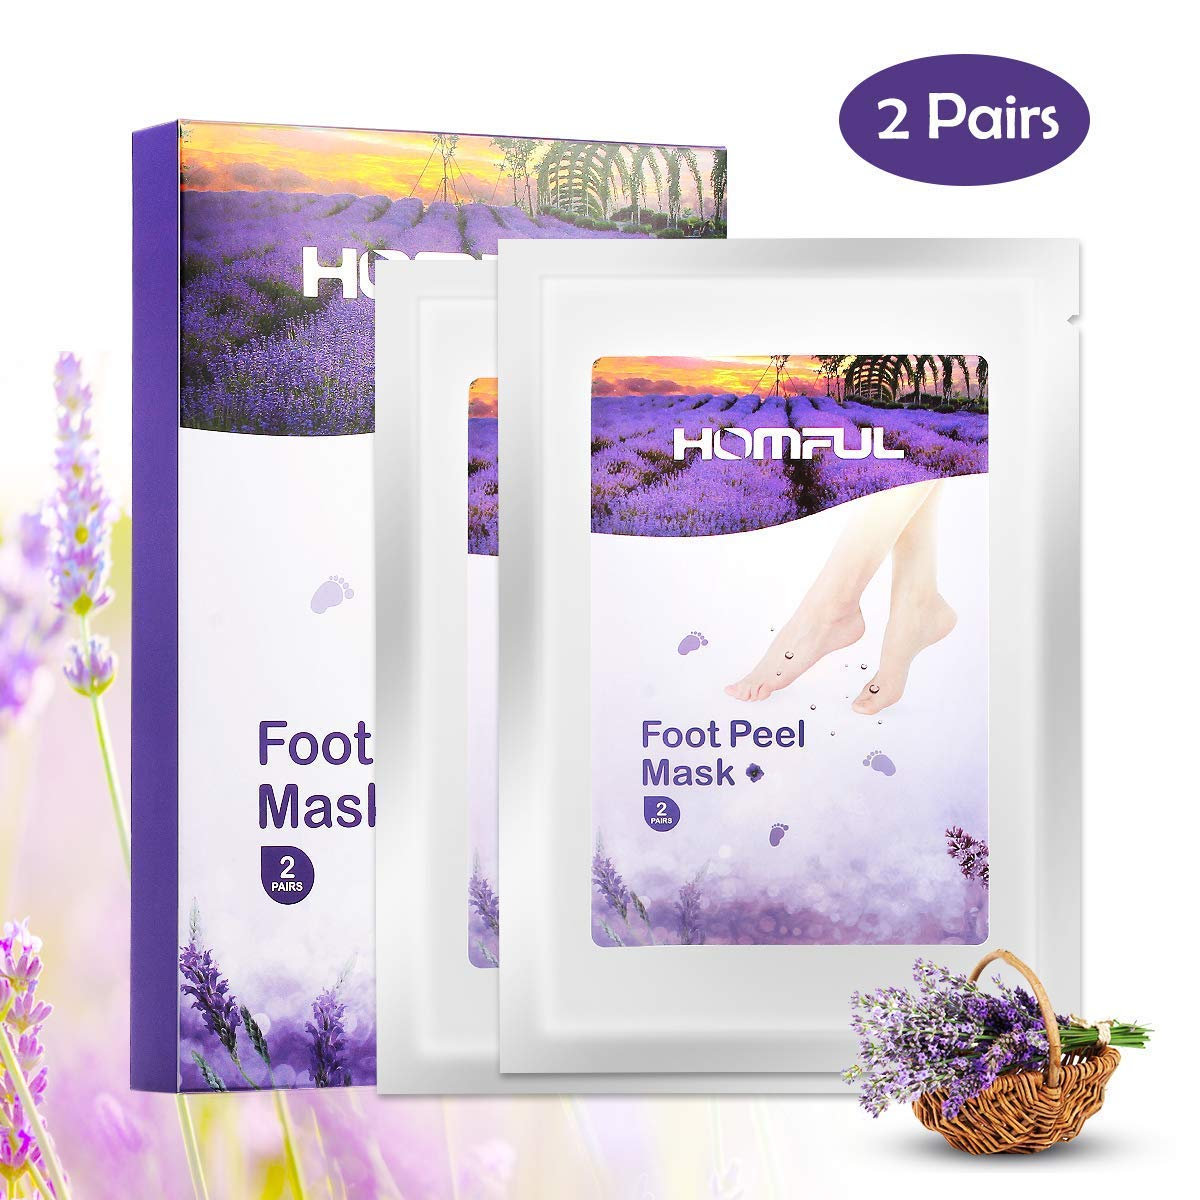 Soft Foot Exfoliation Peeling Mask, 2 Pairs of Lavender Foot Scrub Mask, Babyfoot Foot Mask Exfoliant, Exfoliates Coarse Dead Skin and Calluses in 7 days HOMFUL